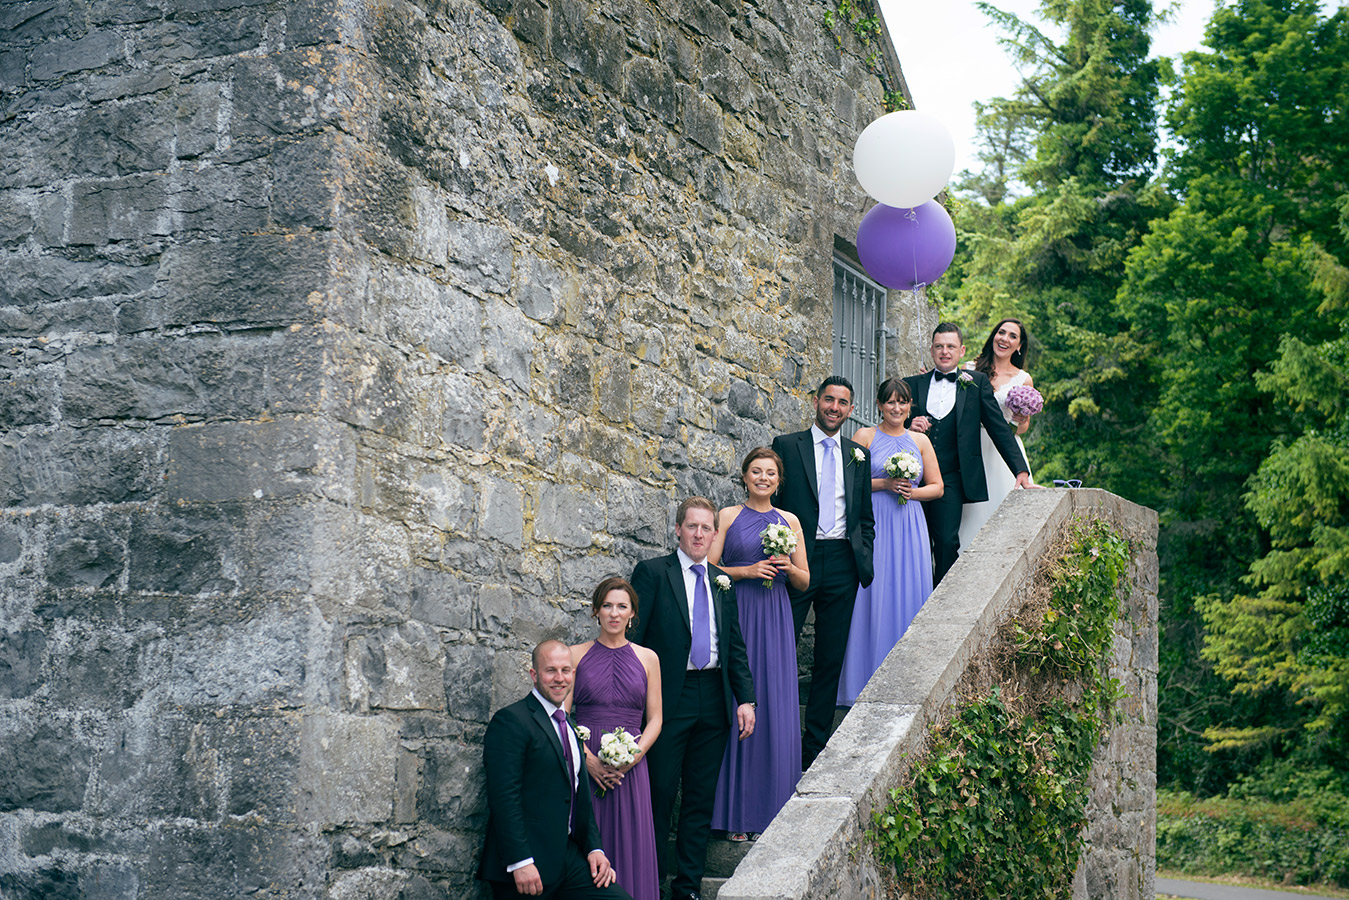 bridal party bridesmaids in purple dresses galway wedding